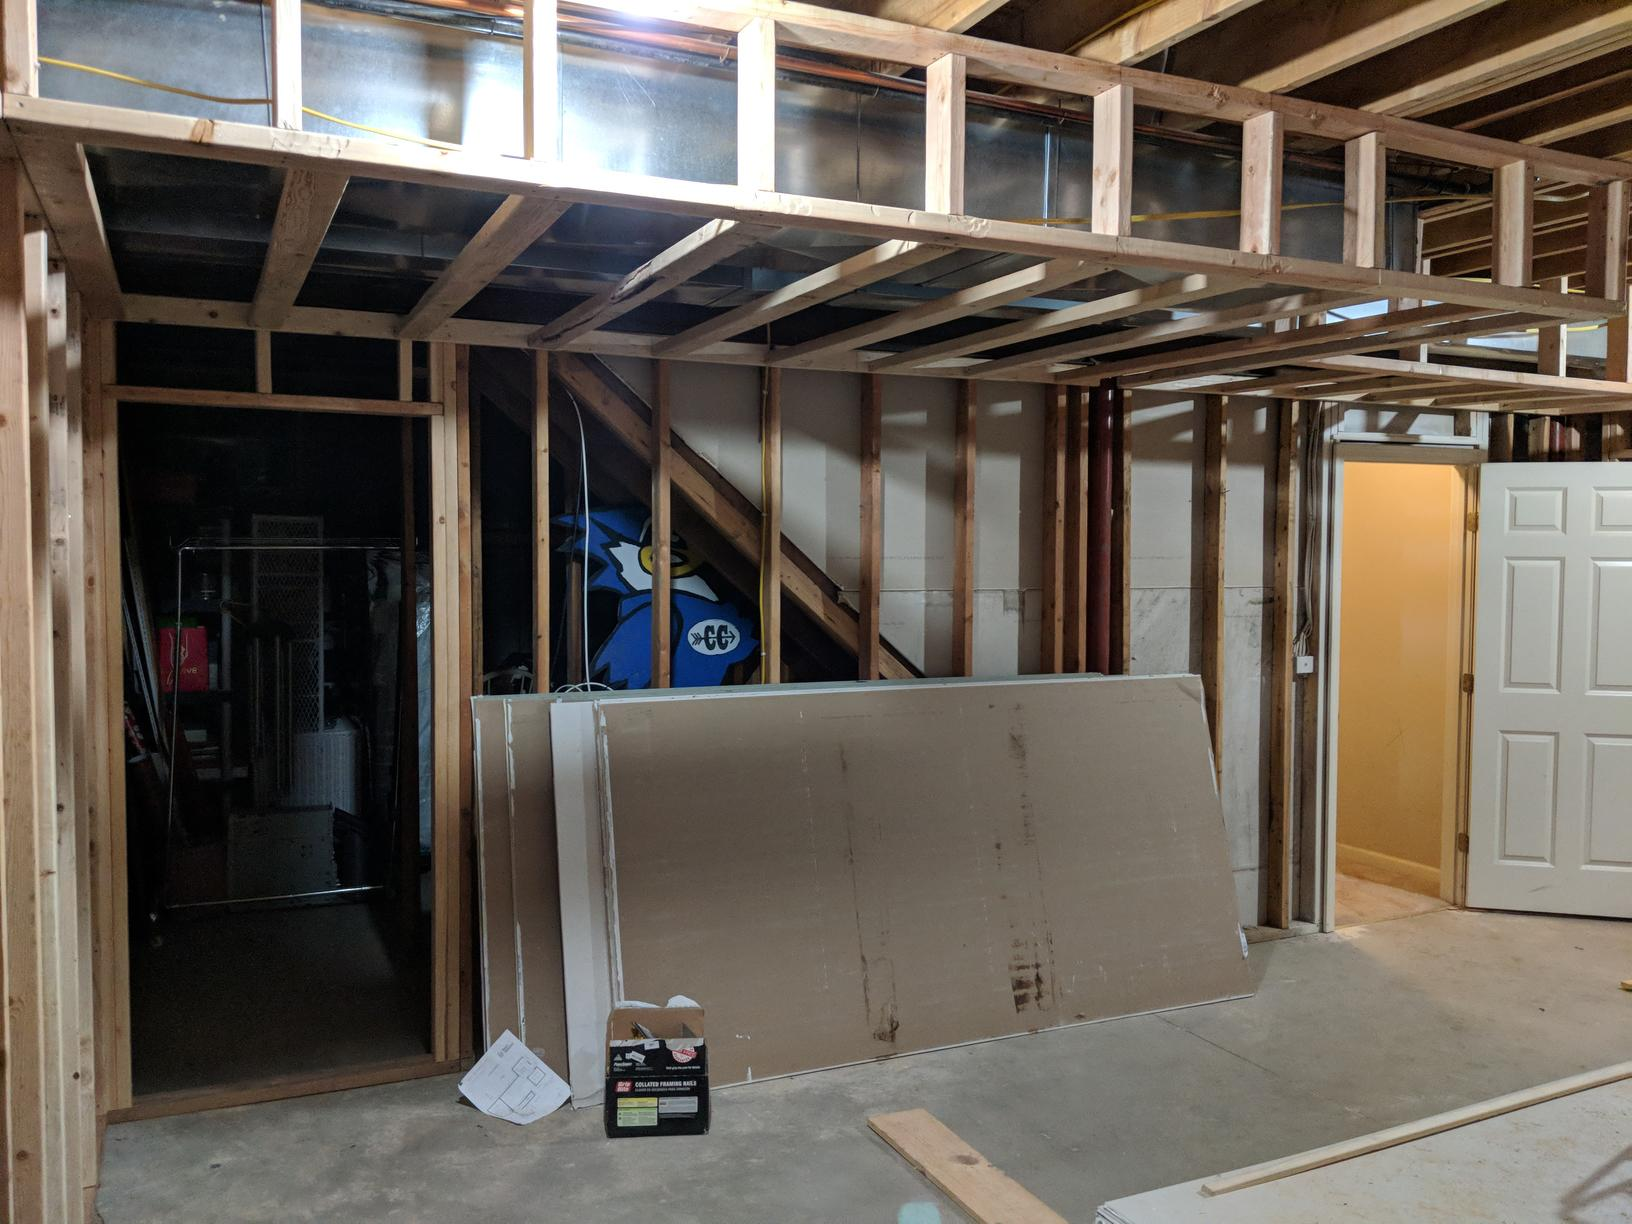 Basement Remodel with Wet Bar in Kansas City, MO - Before Photo